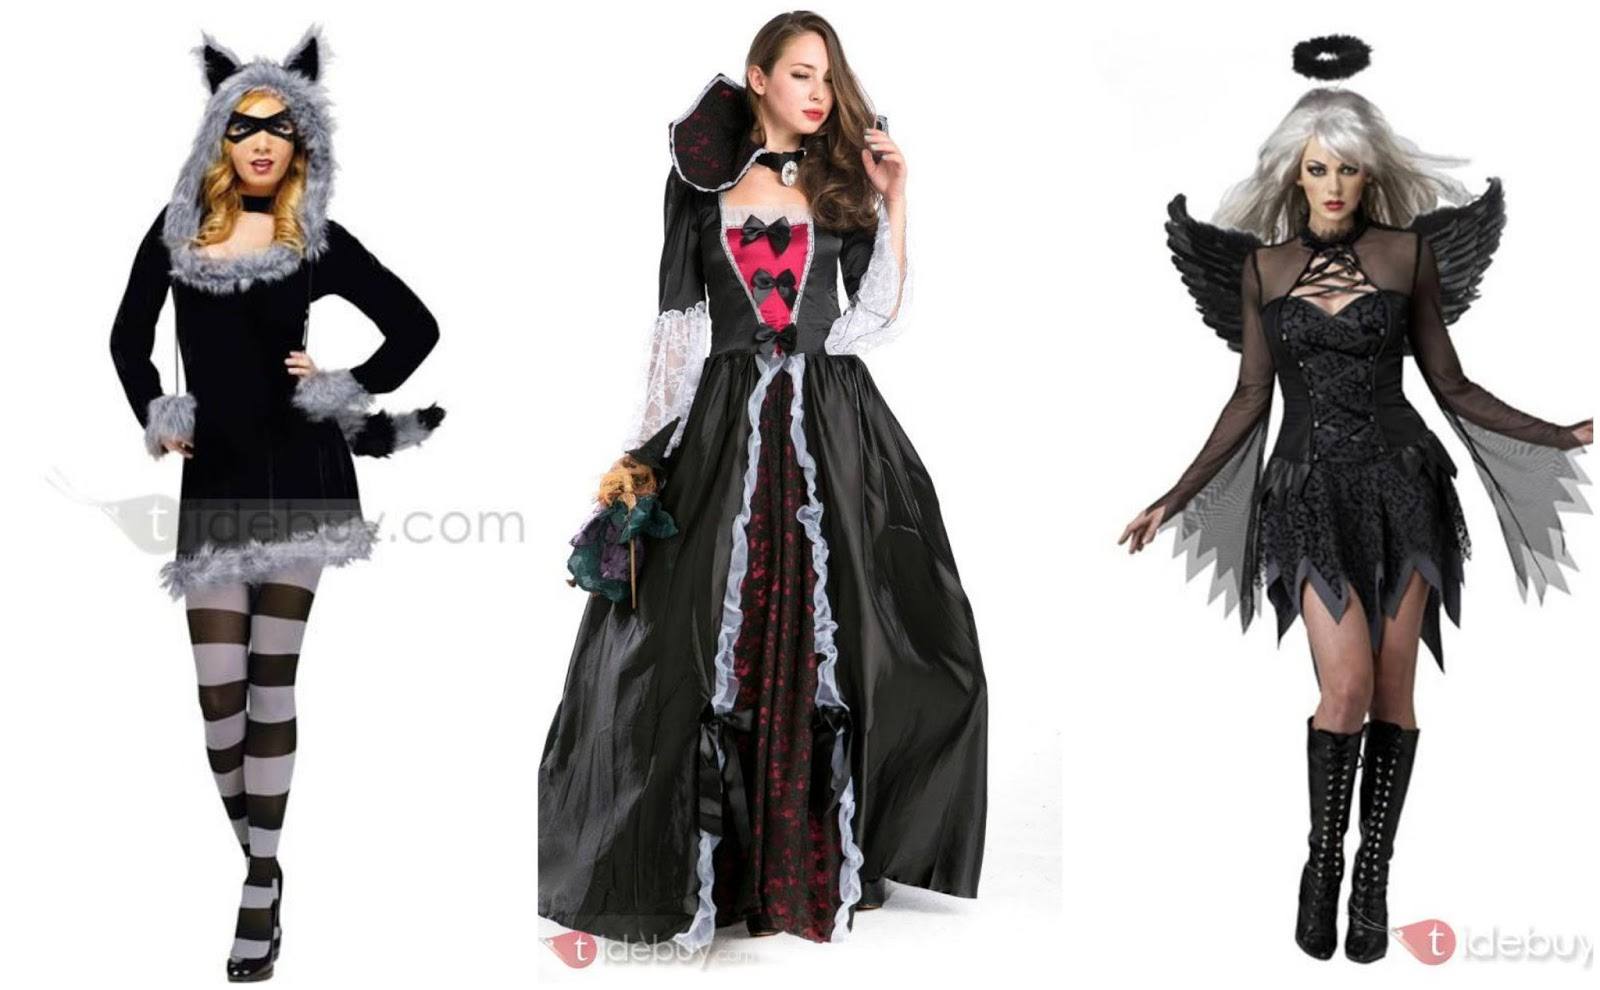 halloween costumes from tidebuy